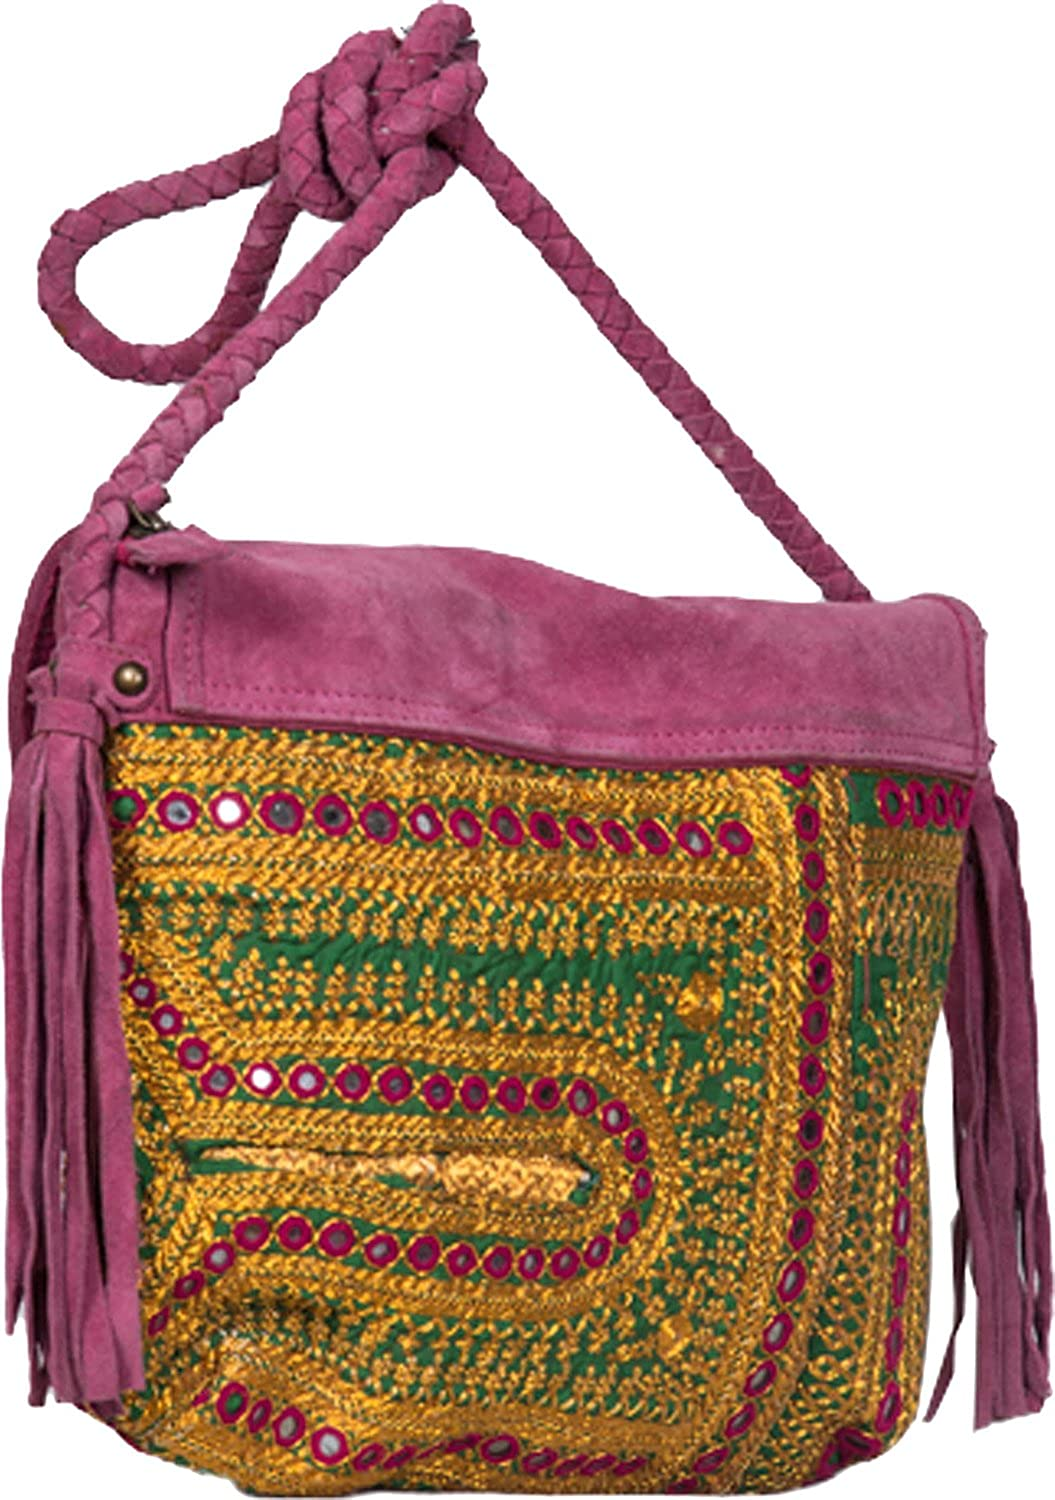 Jaipur Textiles Hub Women's Hand Bag ( Yellow, JTH-151 )